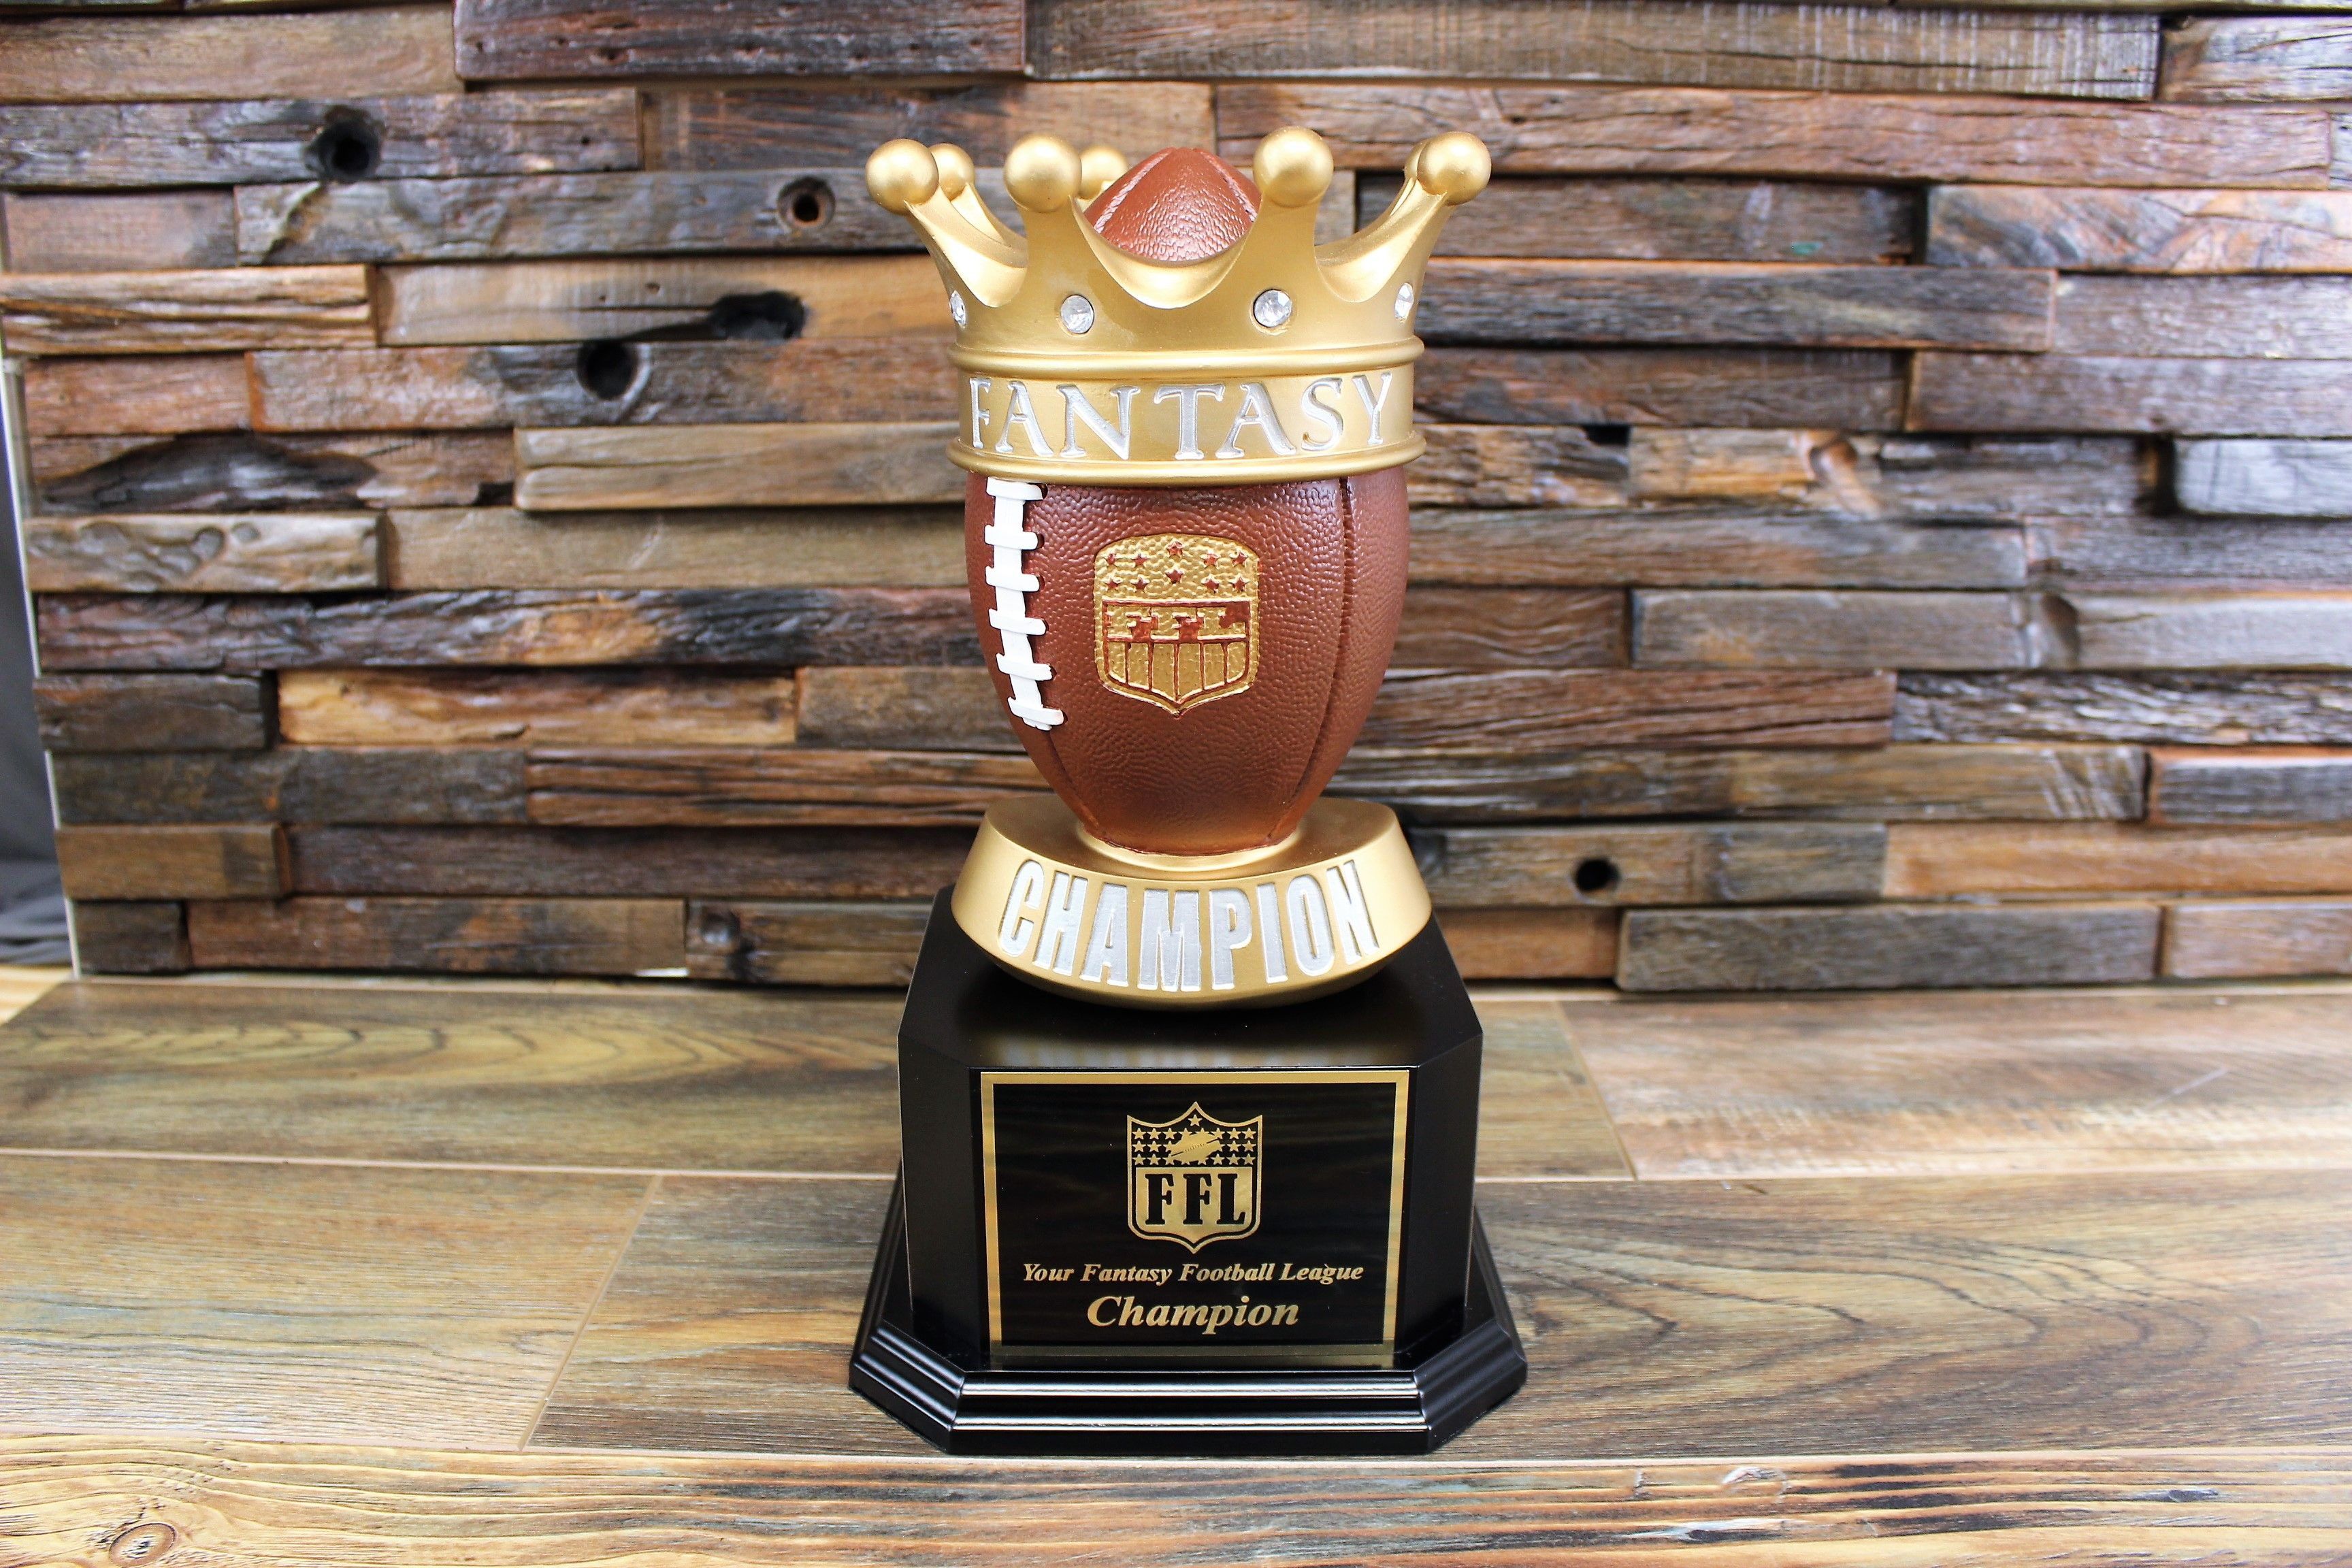 Fantasy Football Gold Crown Champion Trophy Fantasy Football Trophy Fantasy Football Gifts Football Trophies